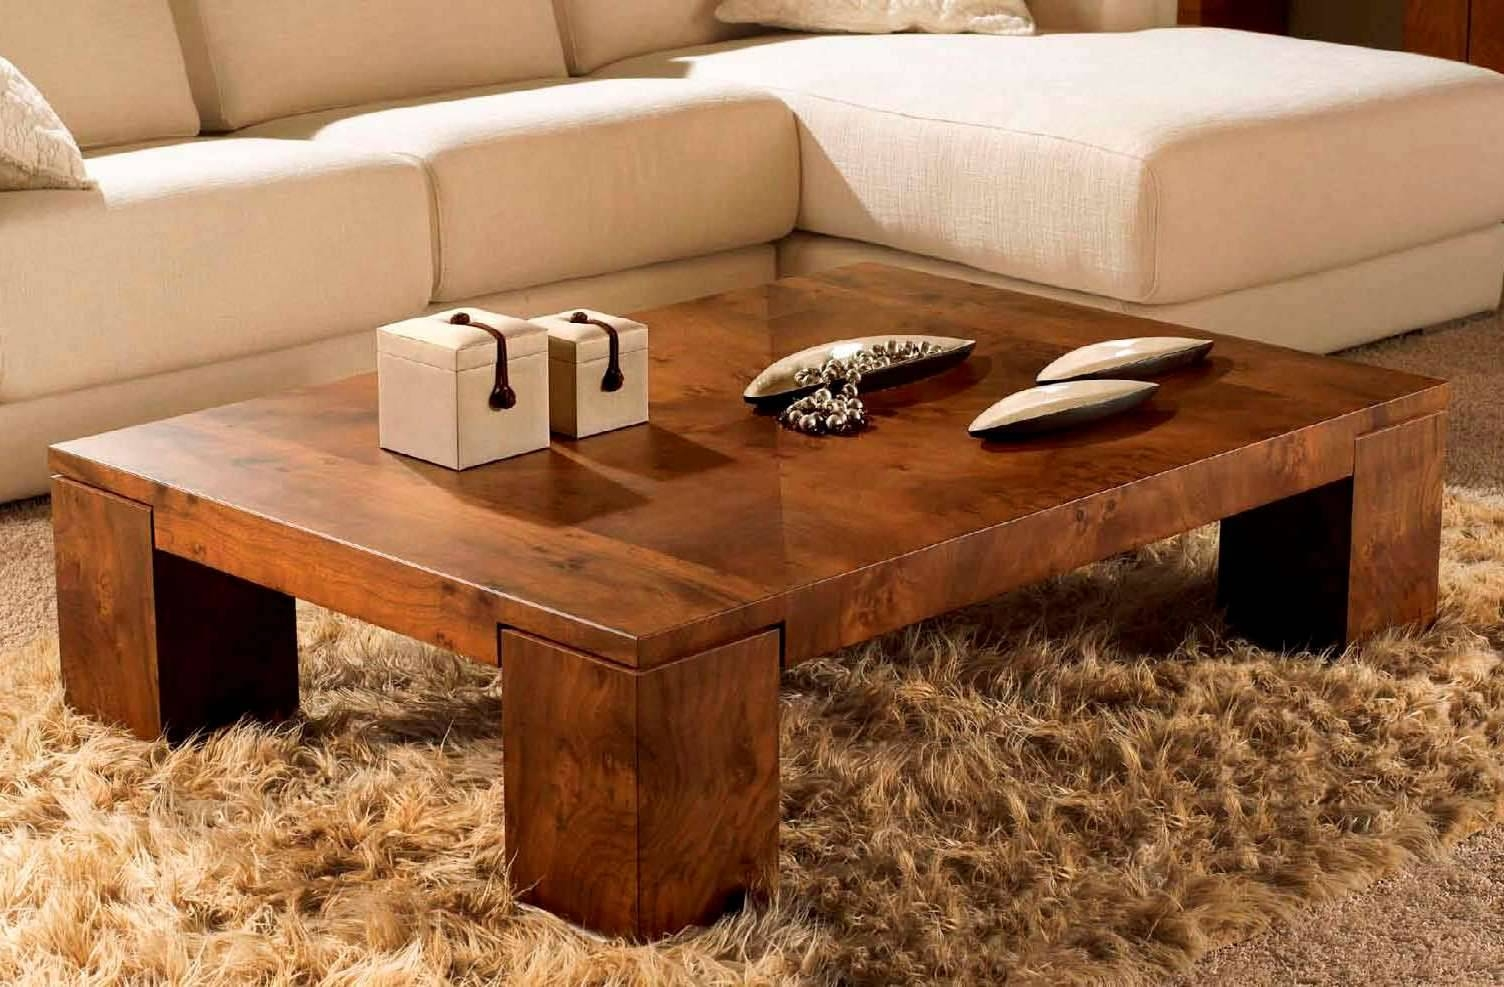 Solid Wood Coffee Tables South Africa - Coffee Addicts pertaining to Natural Wood Coffee Tables (Image 14 of 15)